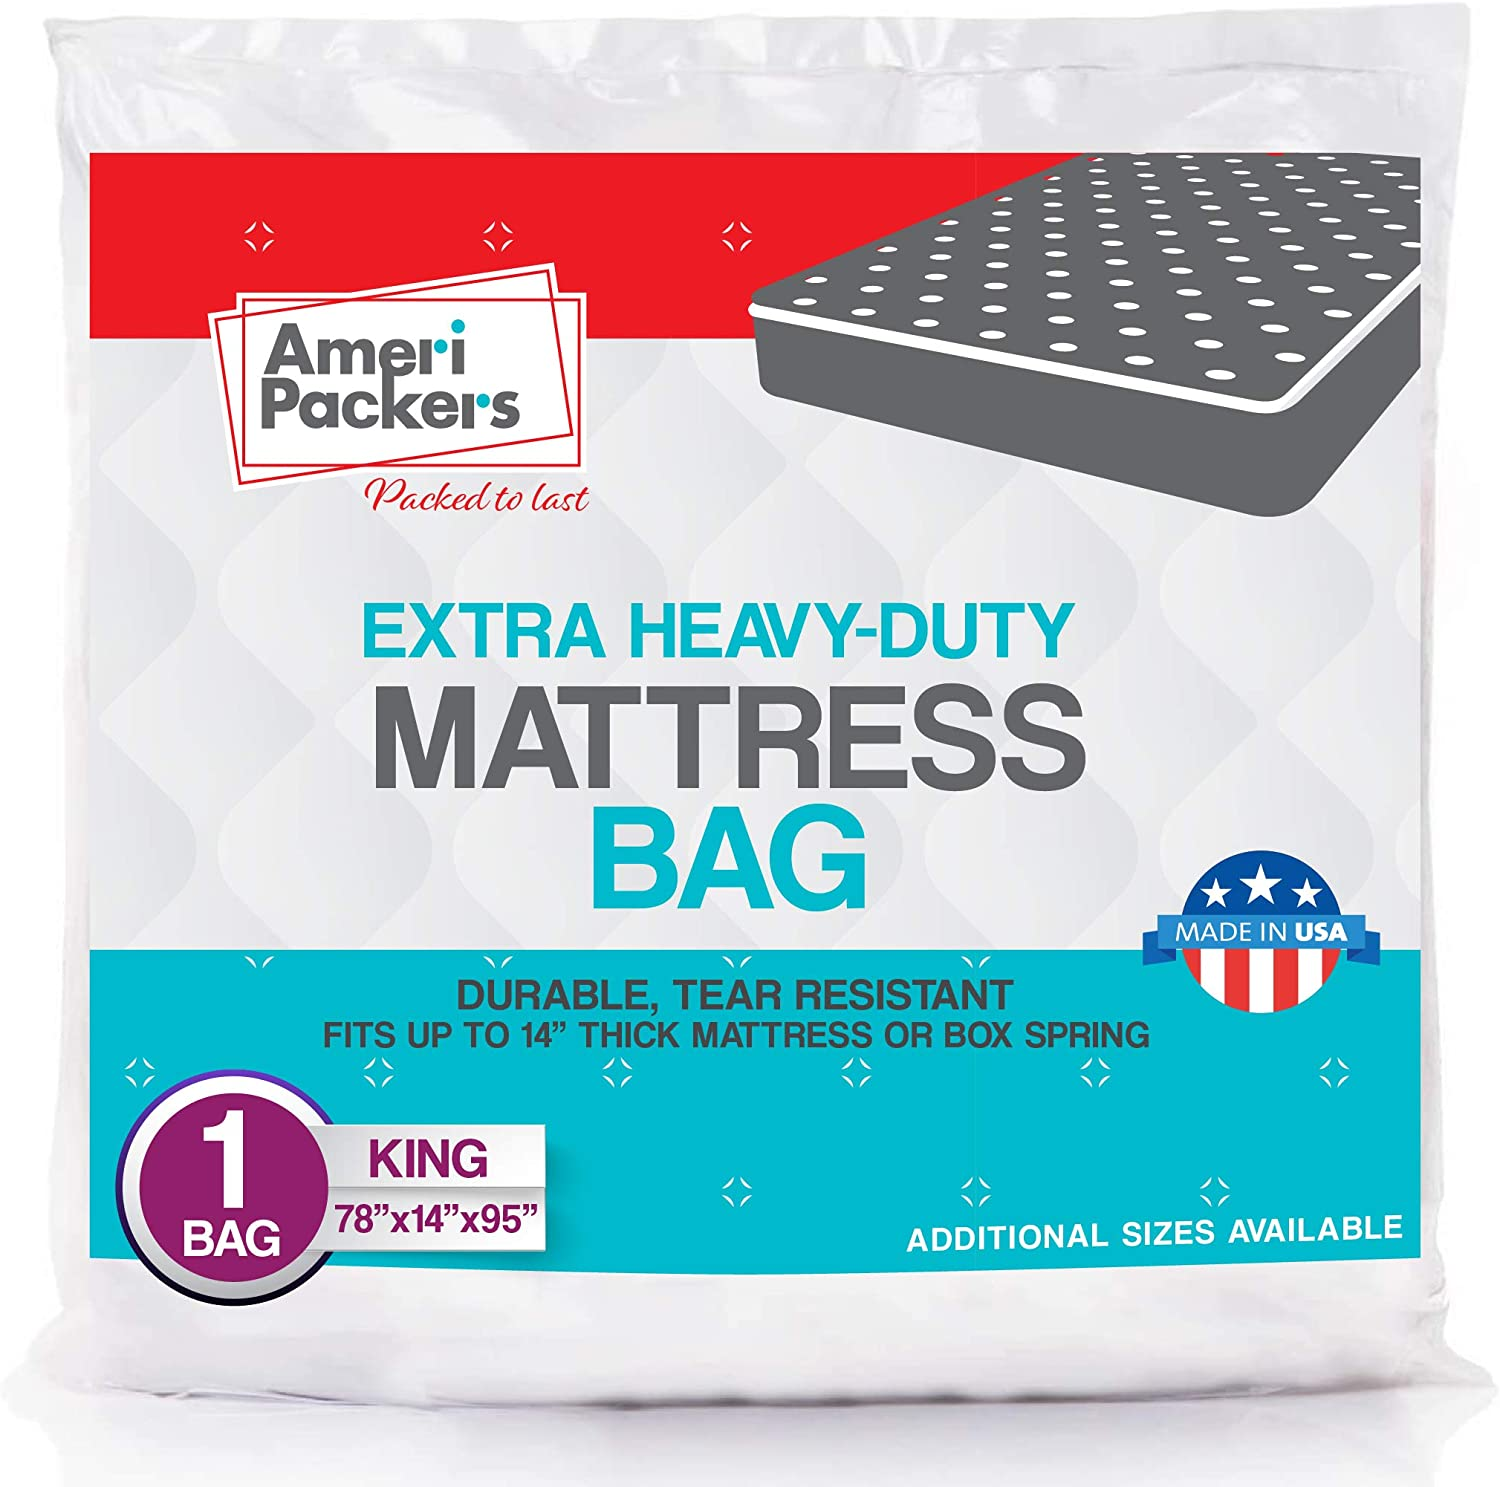 AmeriPackers King Size, Heavy Duty Mattress Bag For Moving & Storing Fits Standard, Pillow Top Variation & Protects Mattress From Stains, Tears, Dirt,